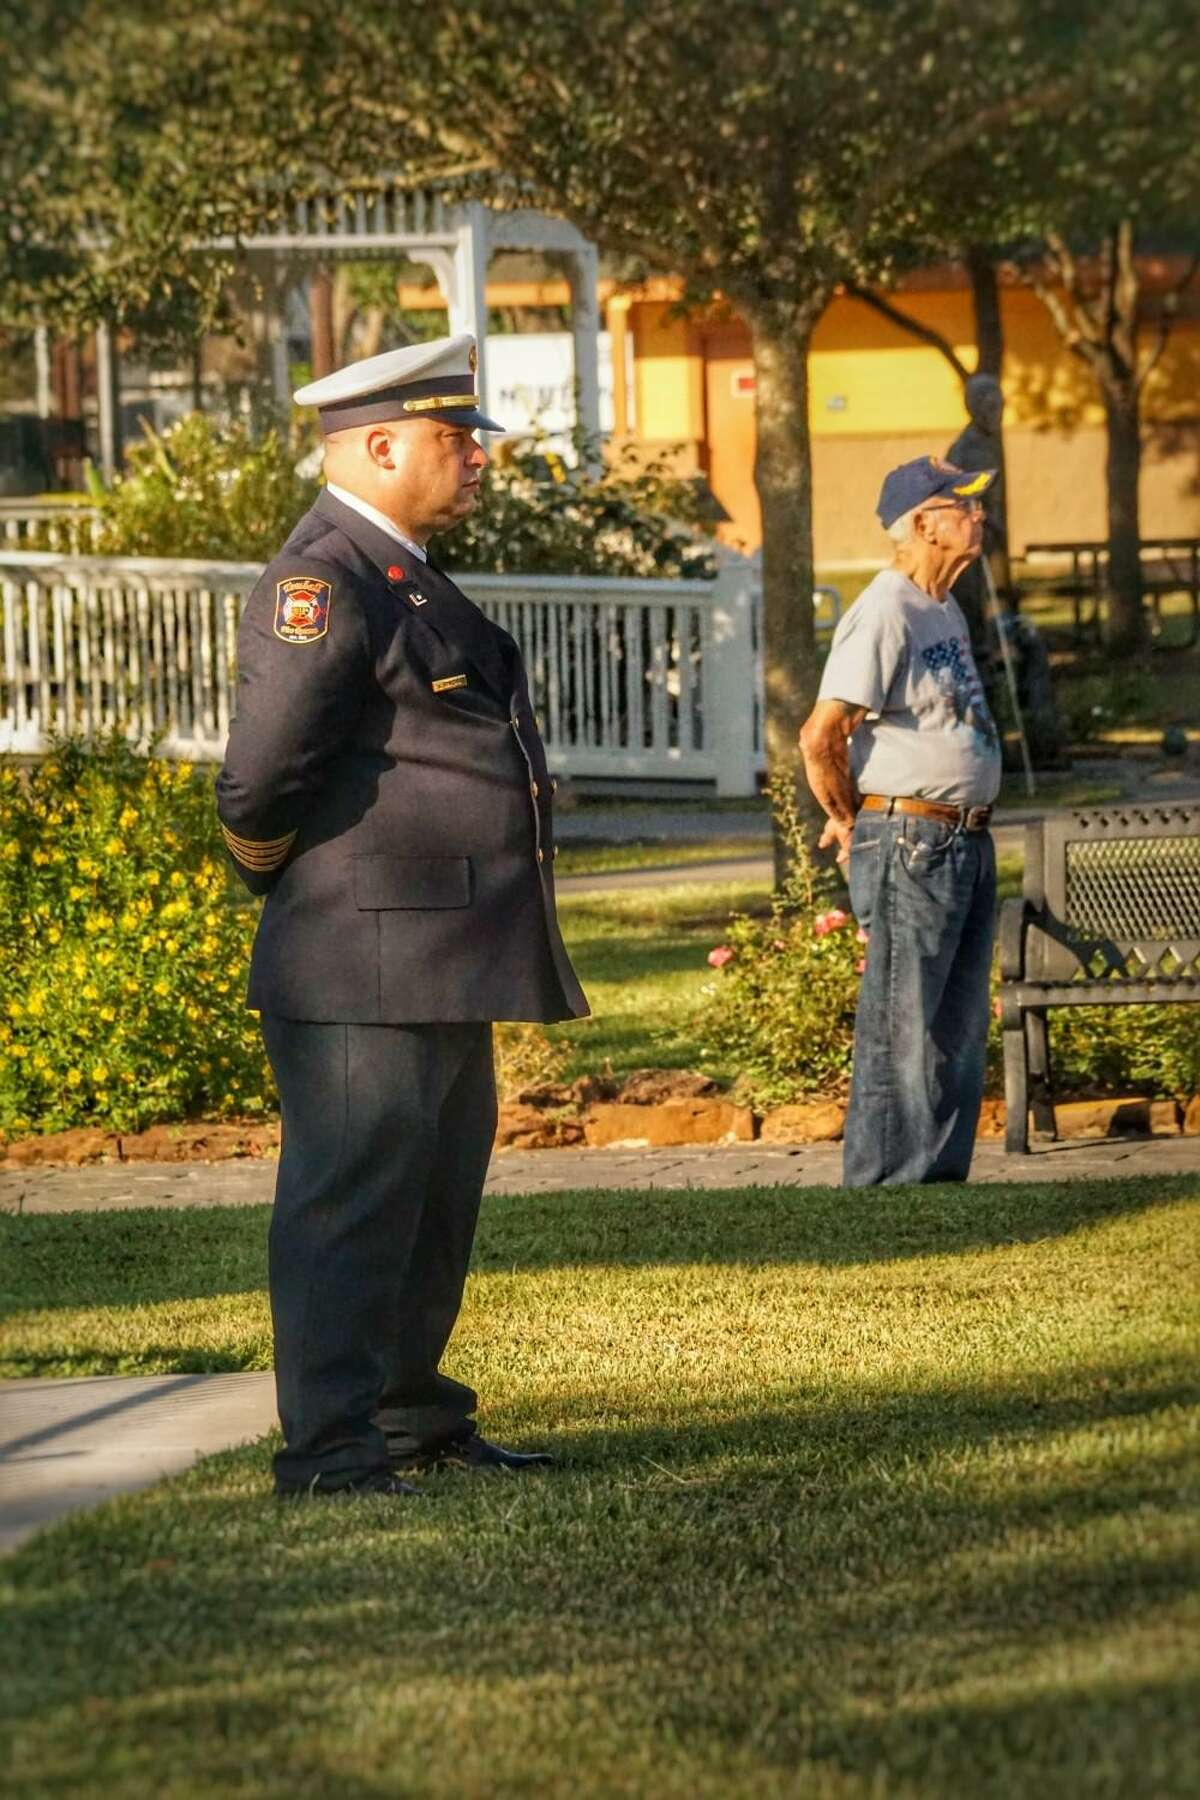 A photograph titled 'Generations' shows Tomball's new Fire Chief Joe Sykora (left) and a U.S. Navy veteran (right) during the city's 9/11 remembrance event Saturday, Sept. 11, 2021 at the depot.